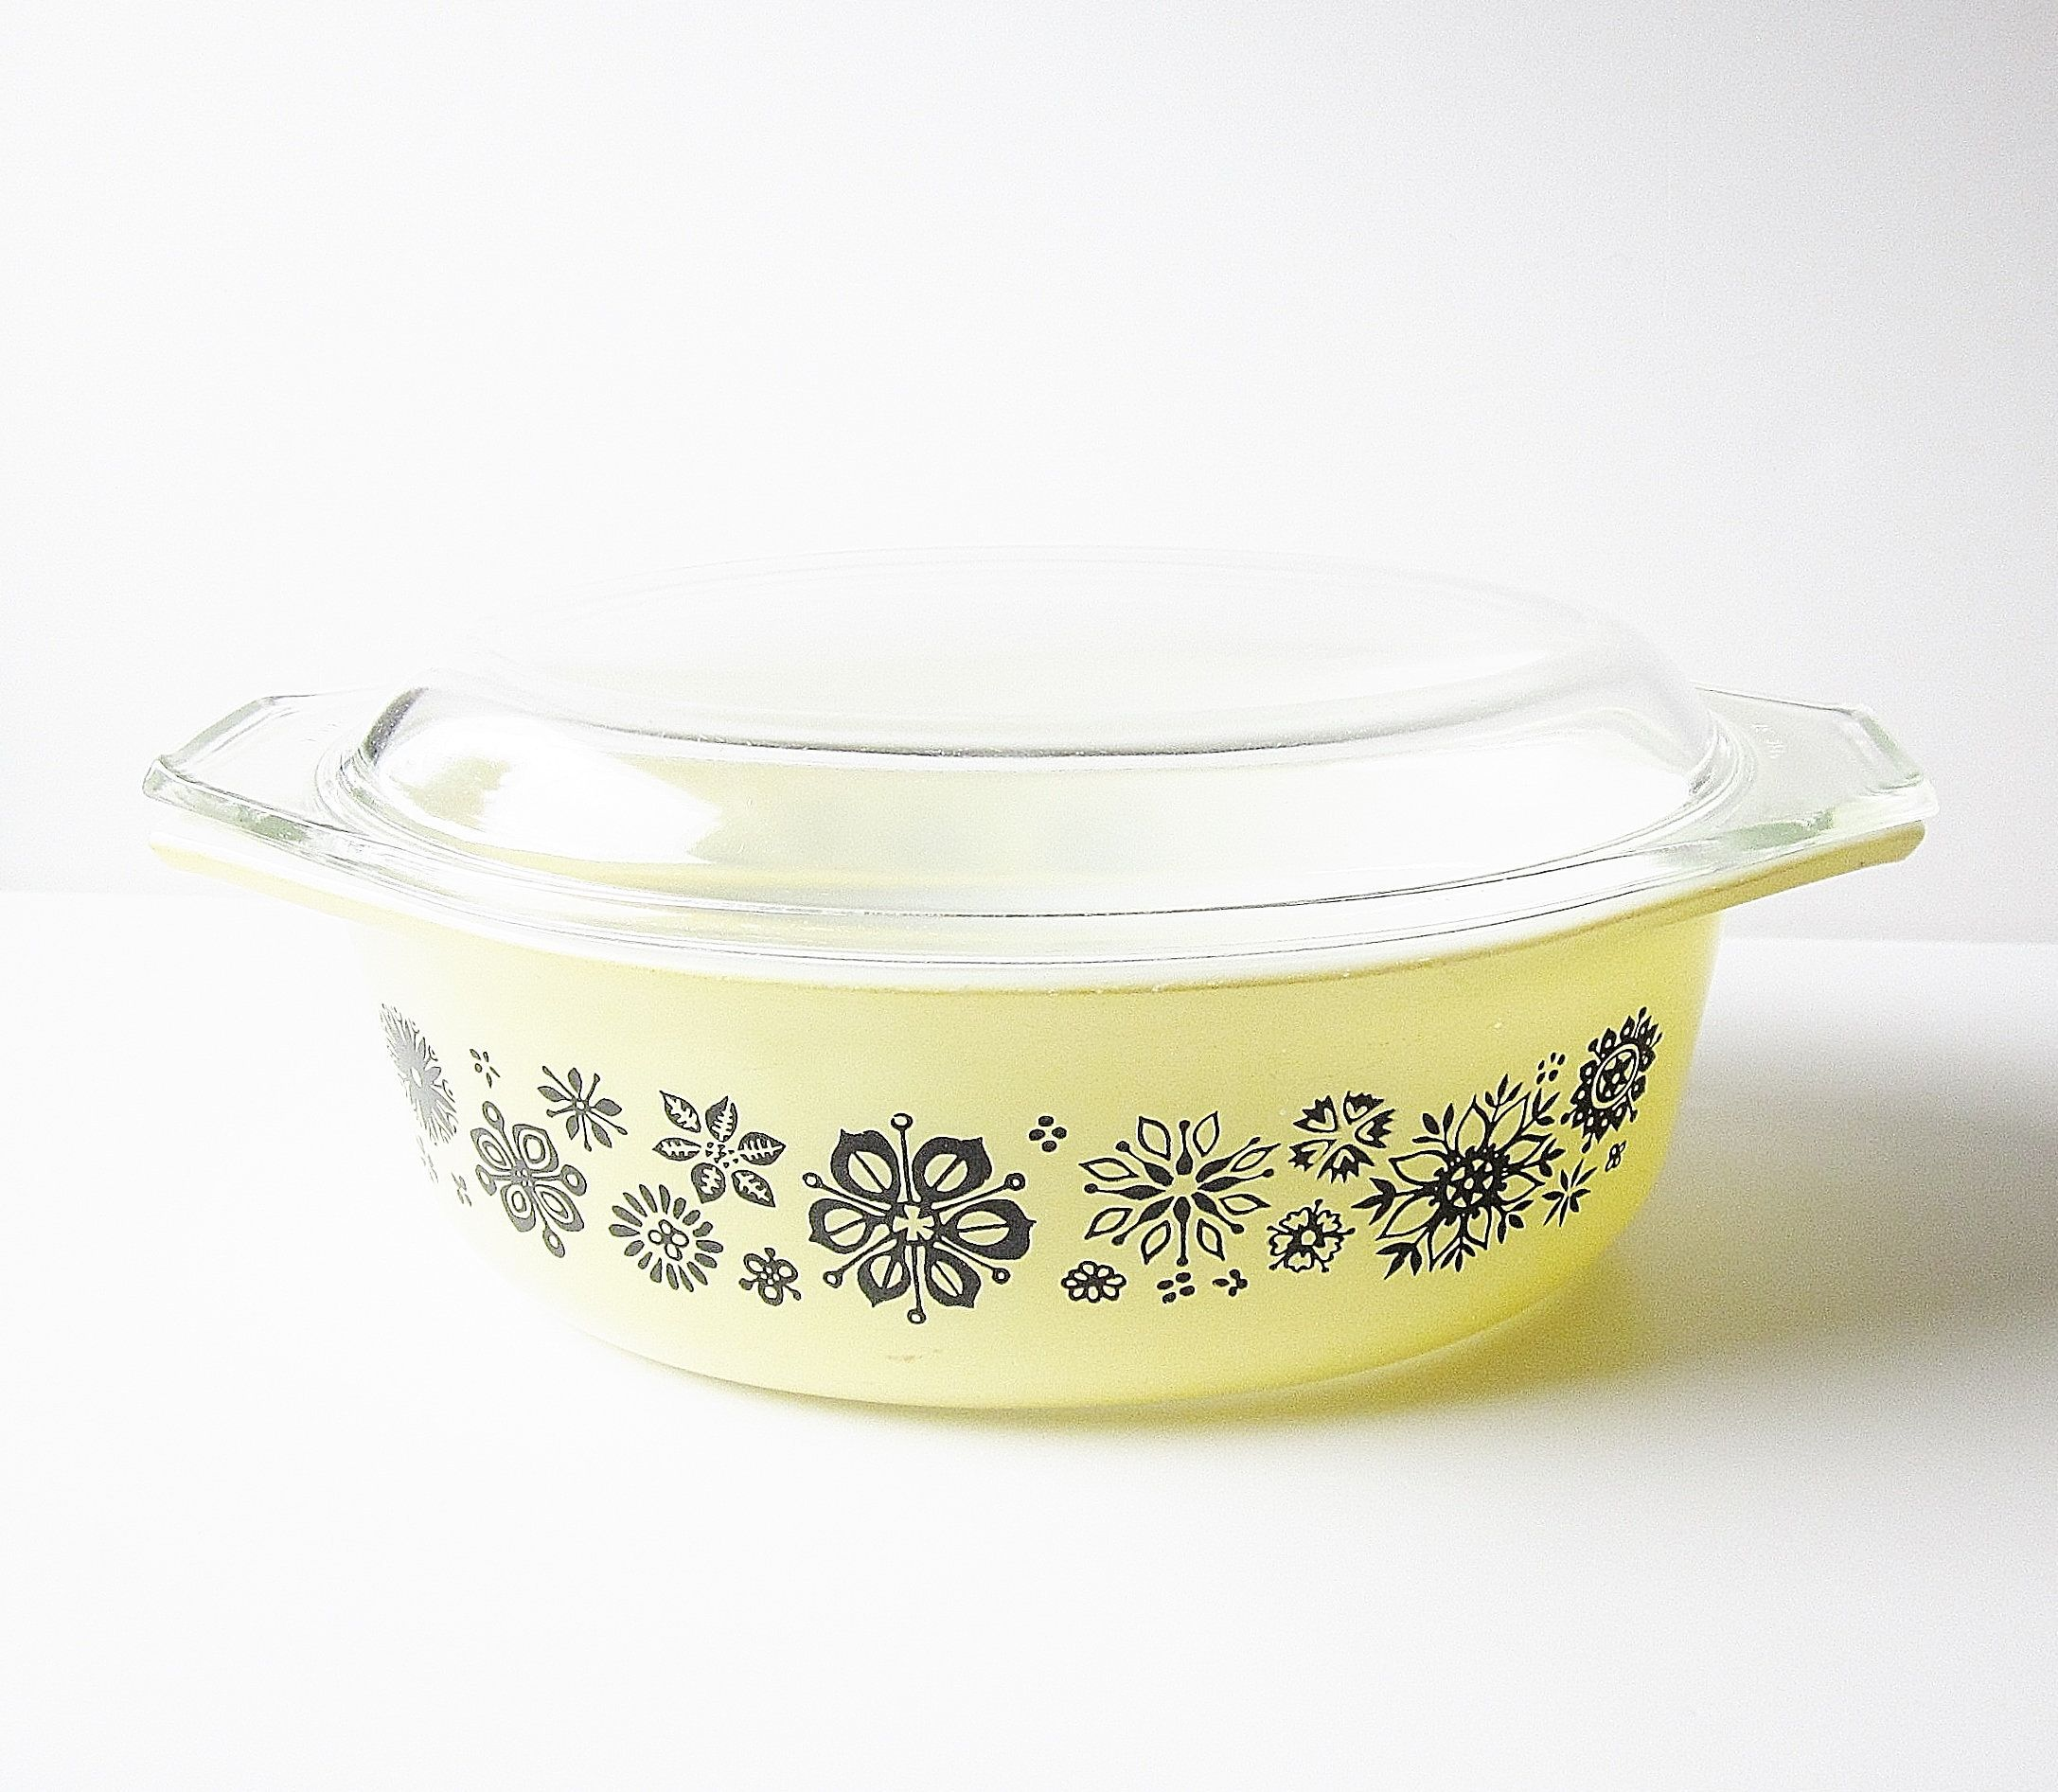 Pyrex #043 Yellow With Black Pressed Flowers Oval Casserole Dish ...